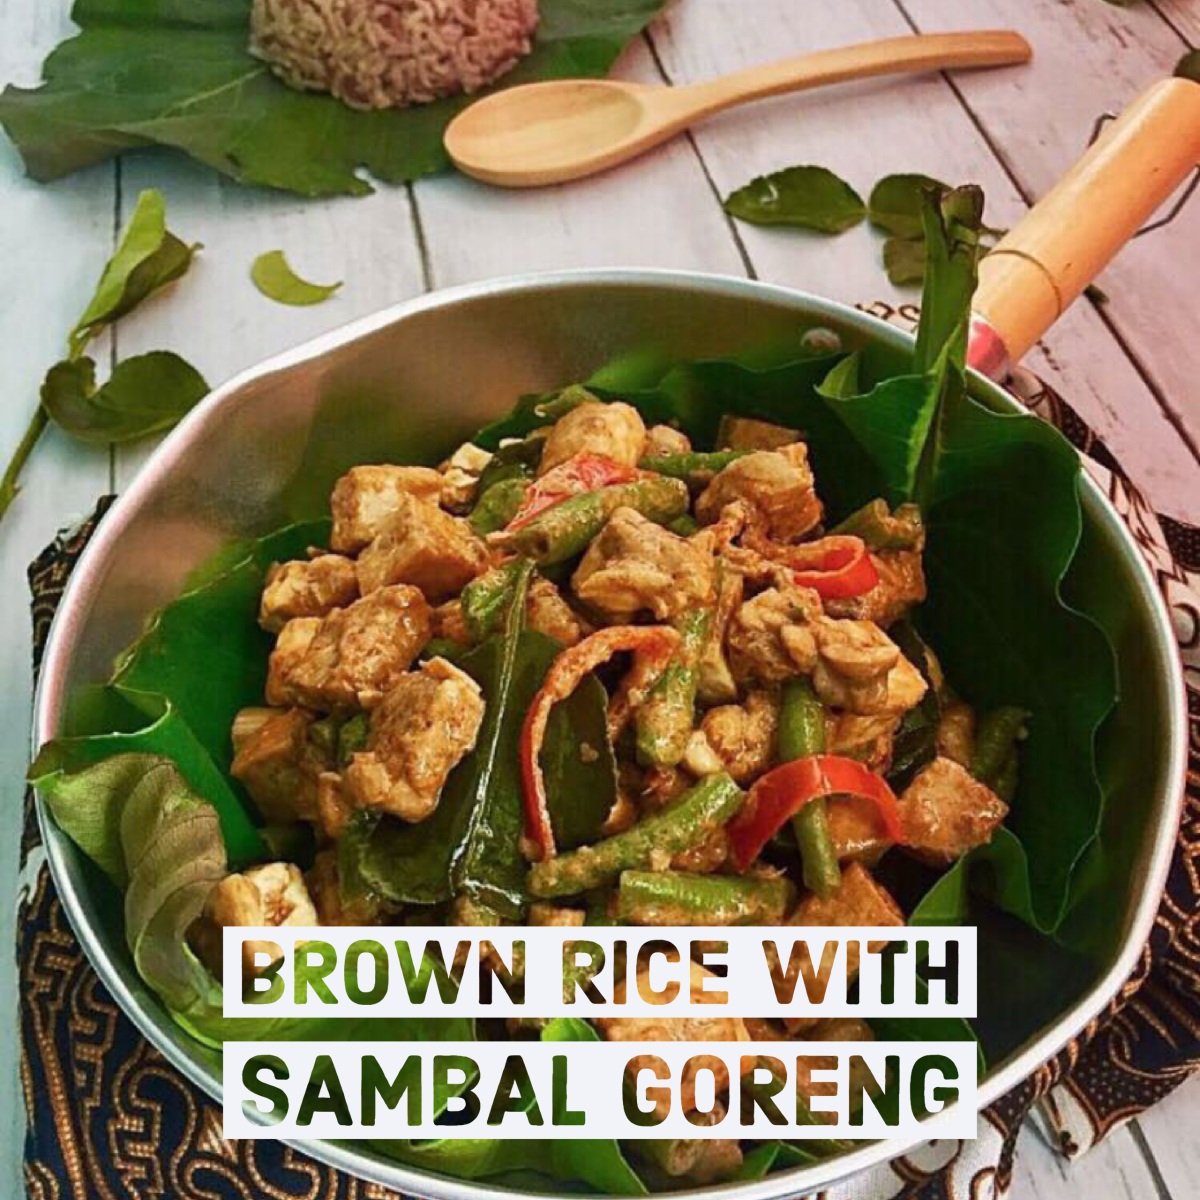 Brown Rice with Sambal Goreng